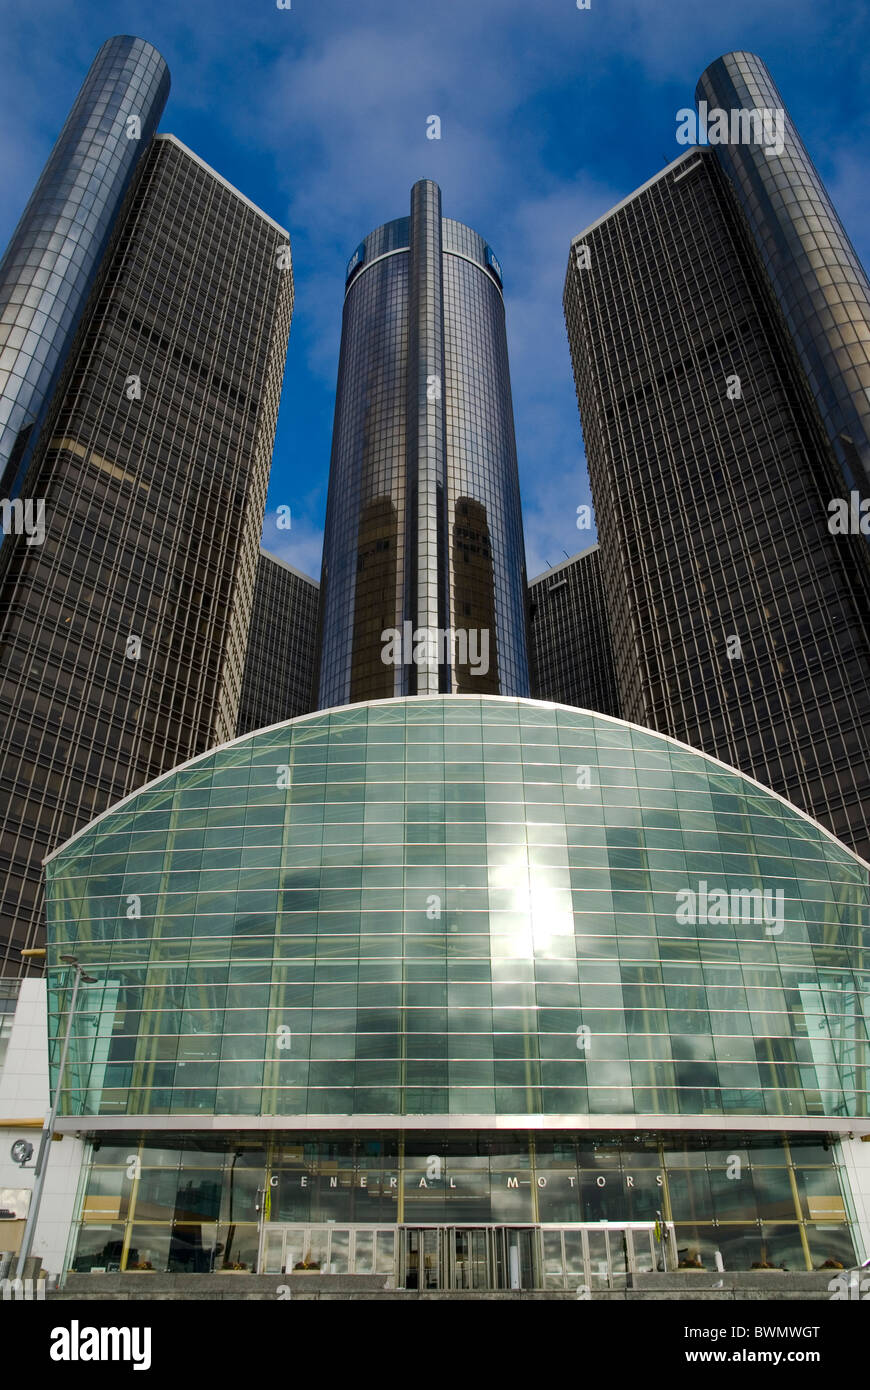 The GM Renaissance Center is a group of seven interconnected skyscrapers in Downtown Detroit, Michigan, United States. - Stock Image